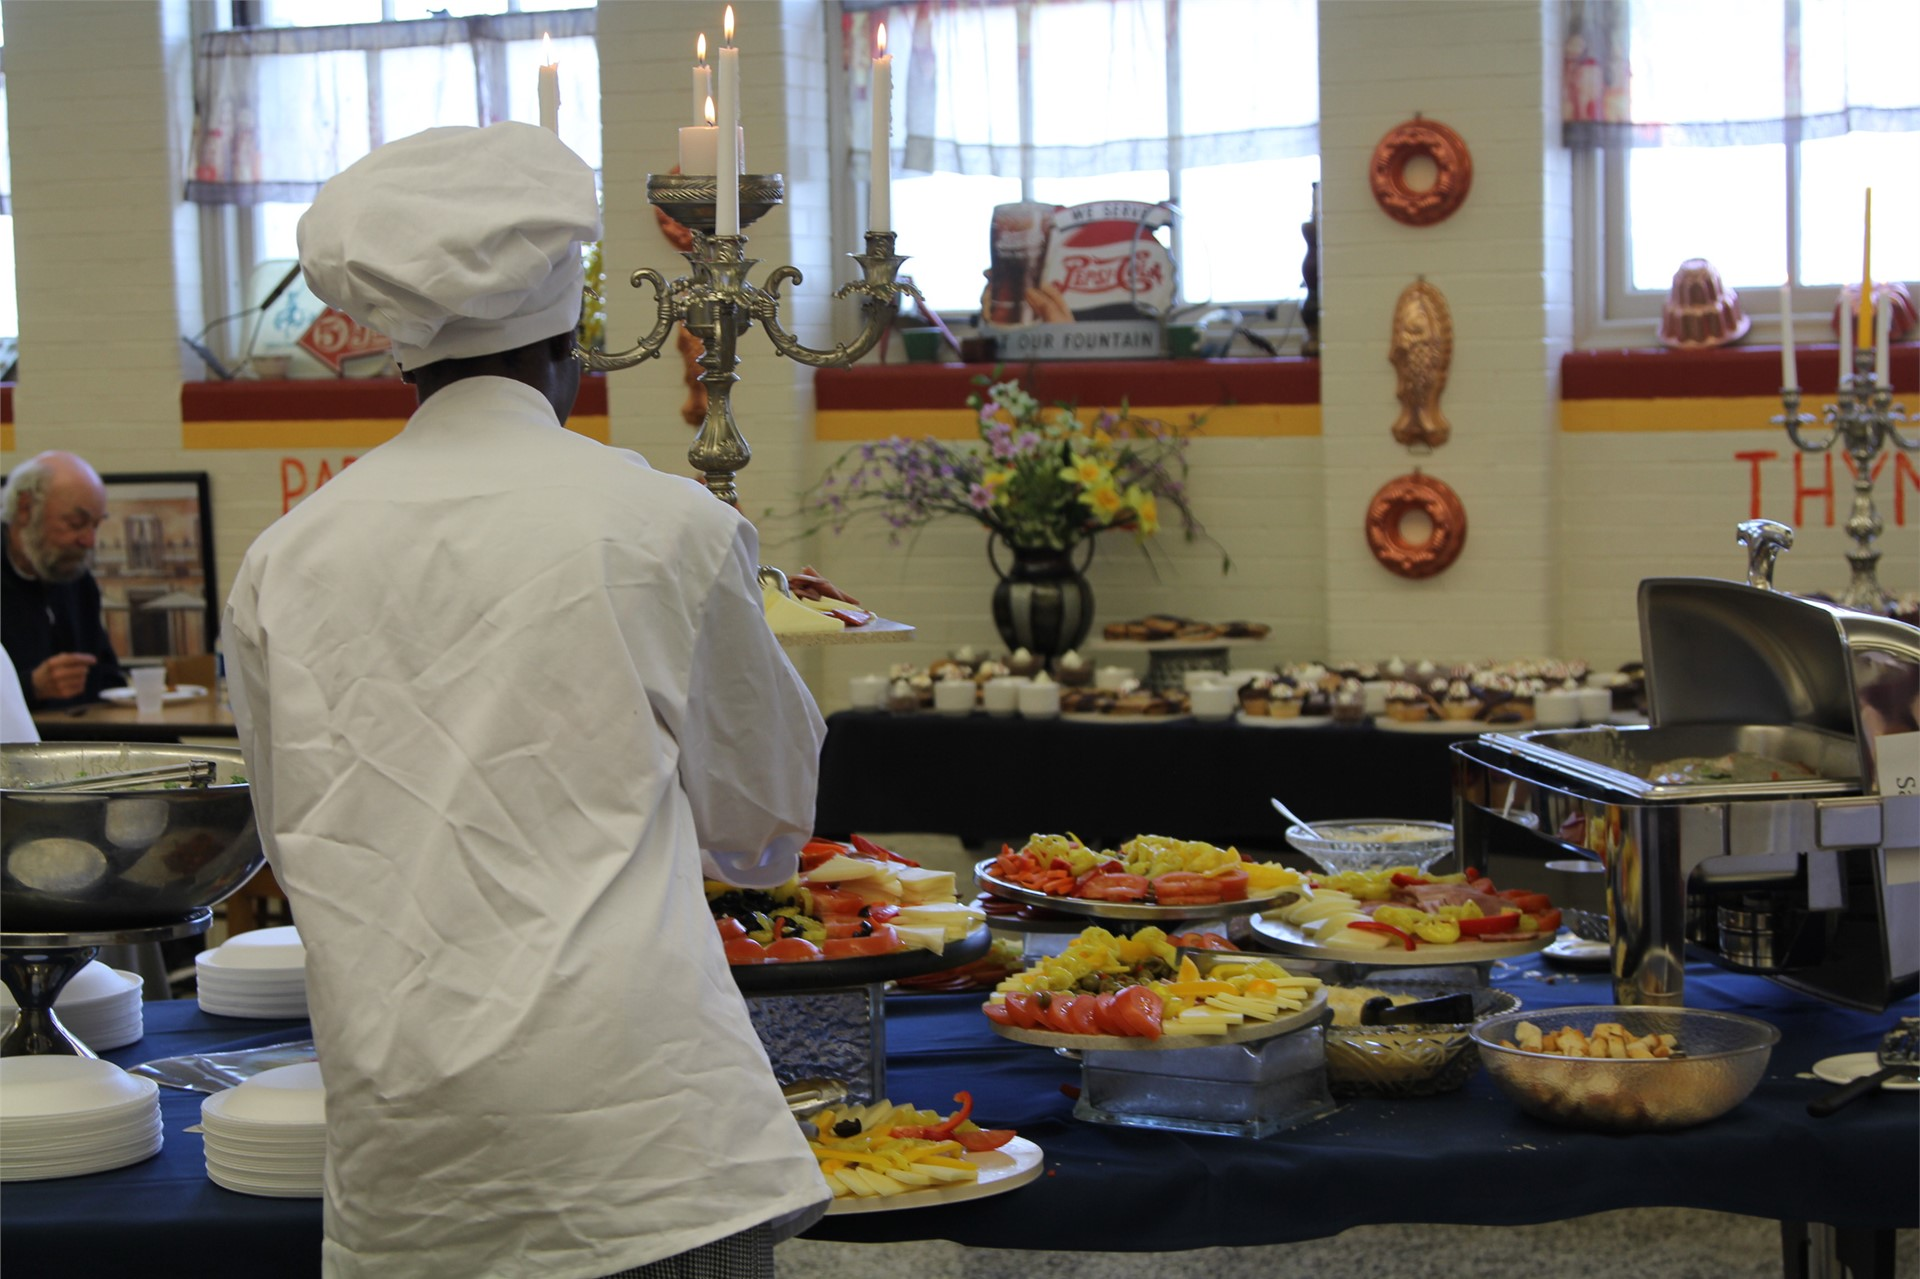 Euclid Culinary Bistro sets up their annual buffet